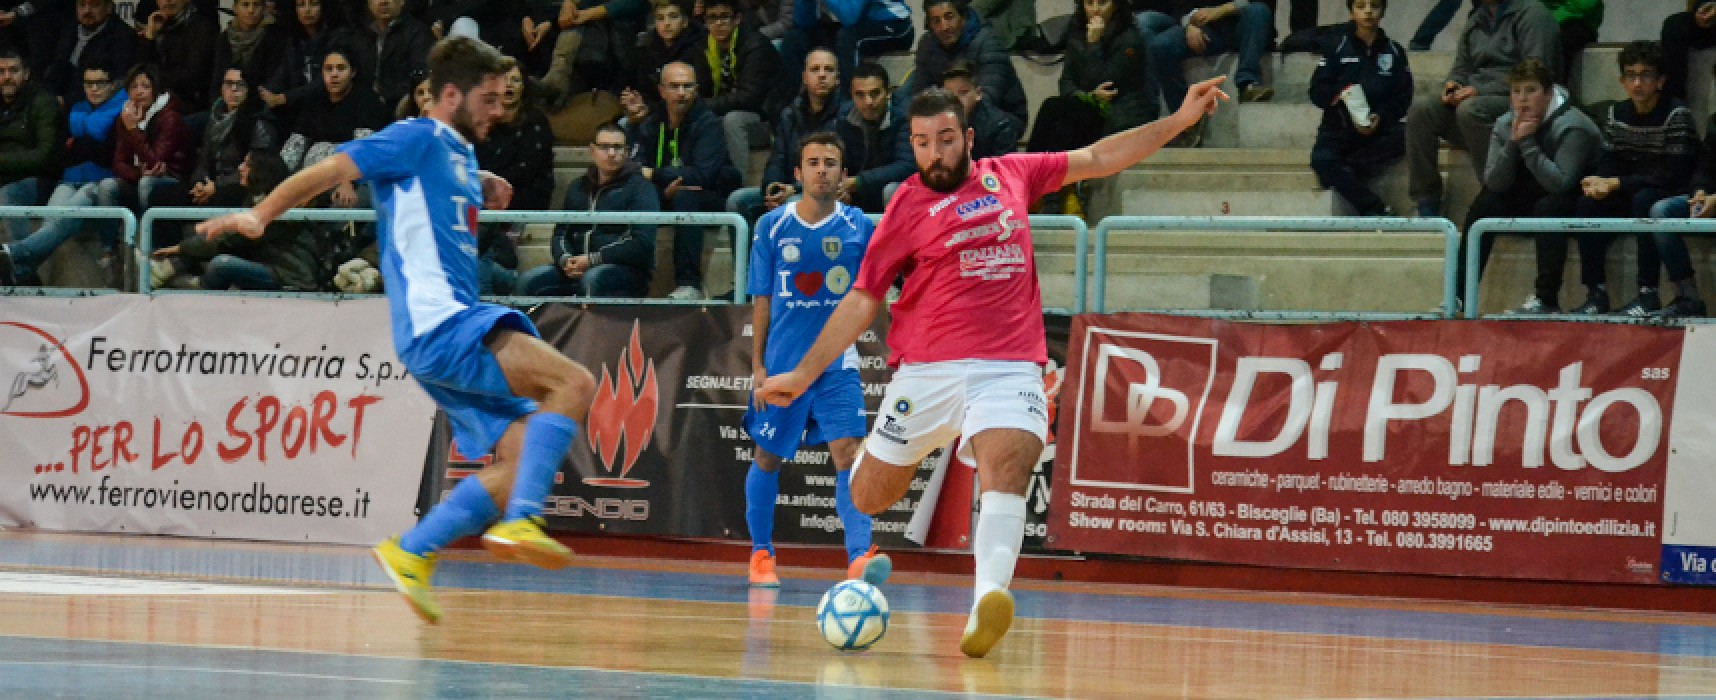 Futsal Bisceglie-Azzurri Conversano 7-3/VIDEO HIGHTLIGHTS